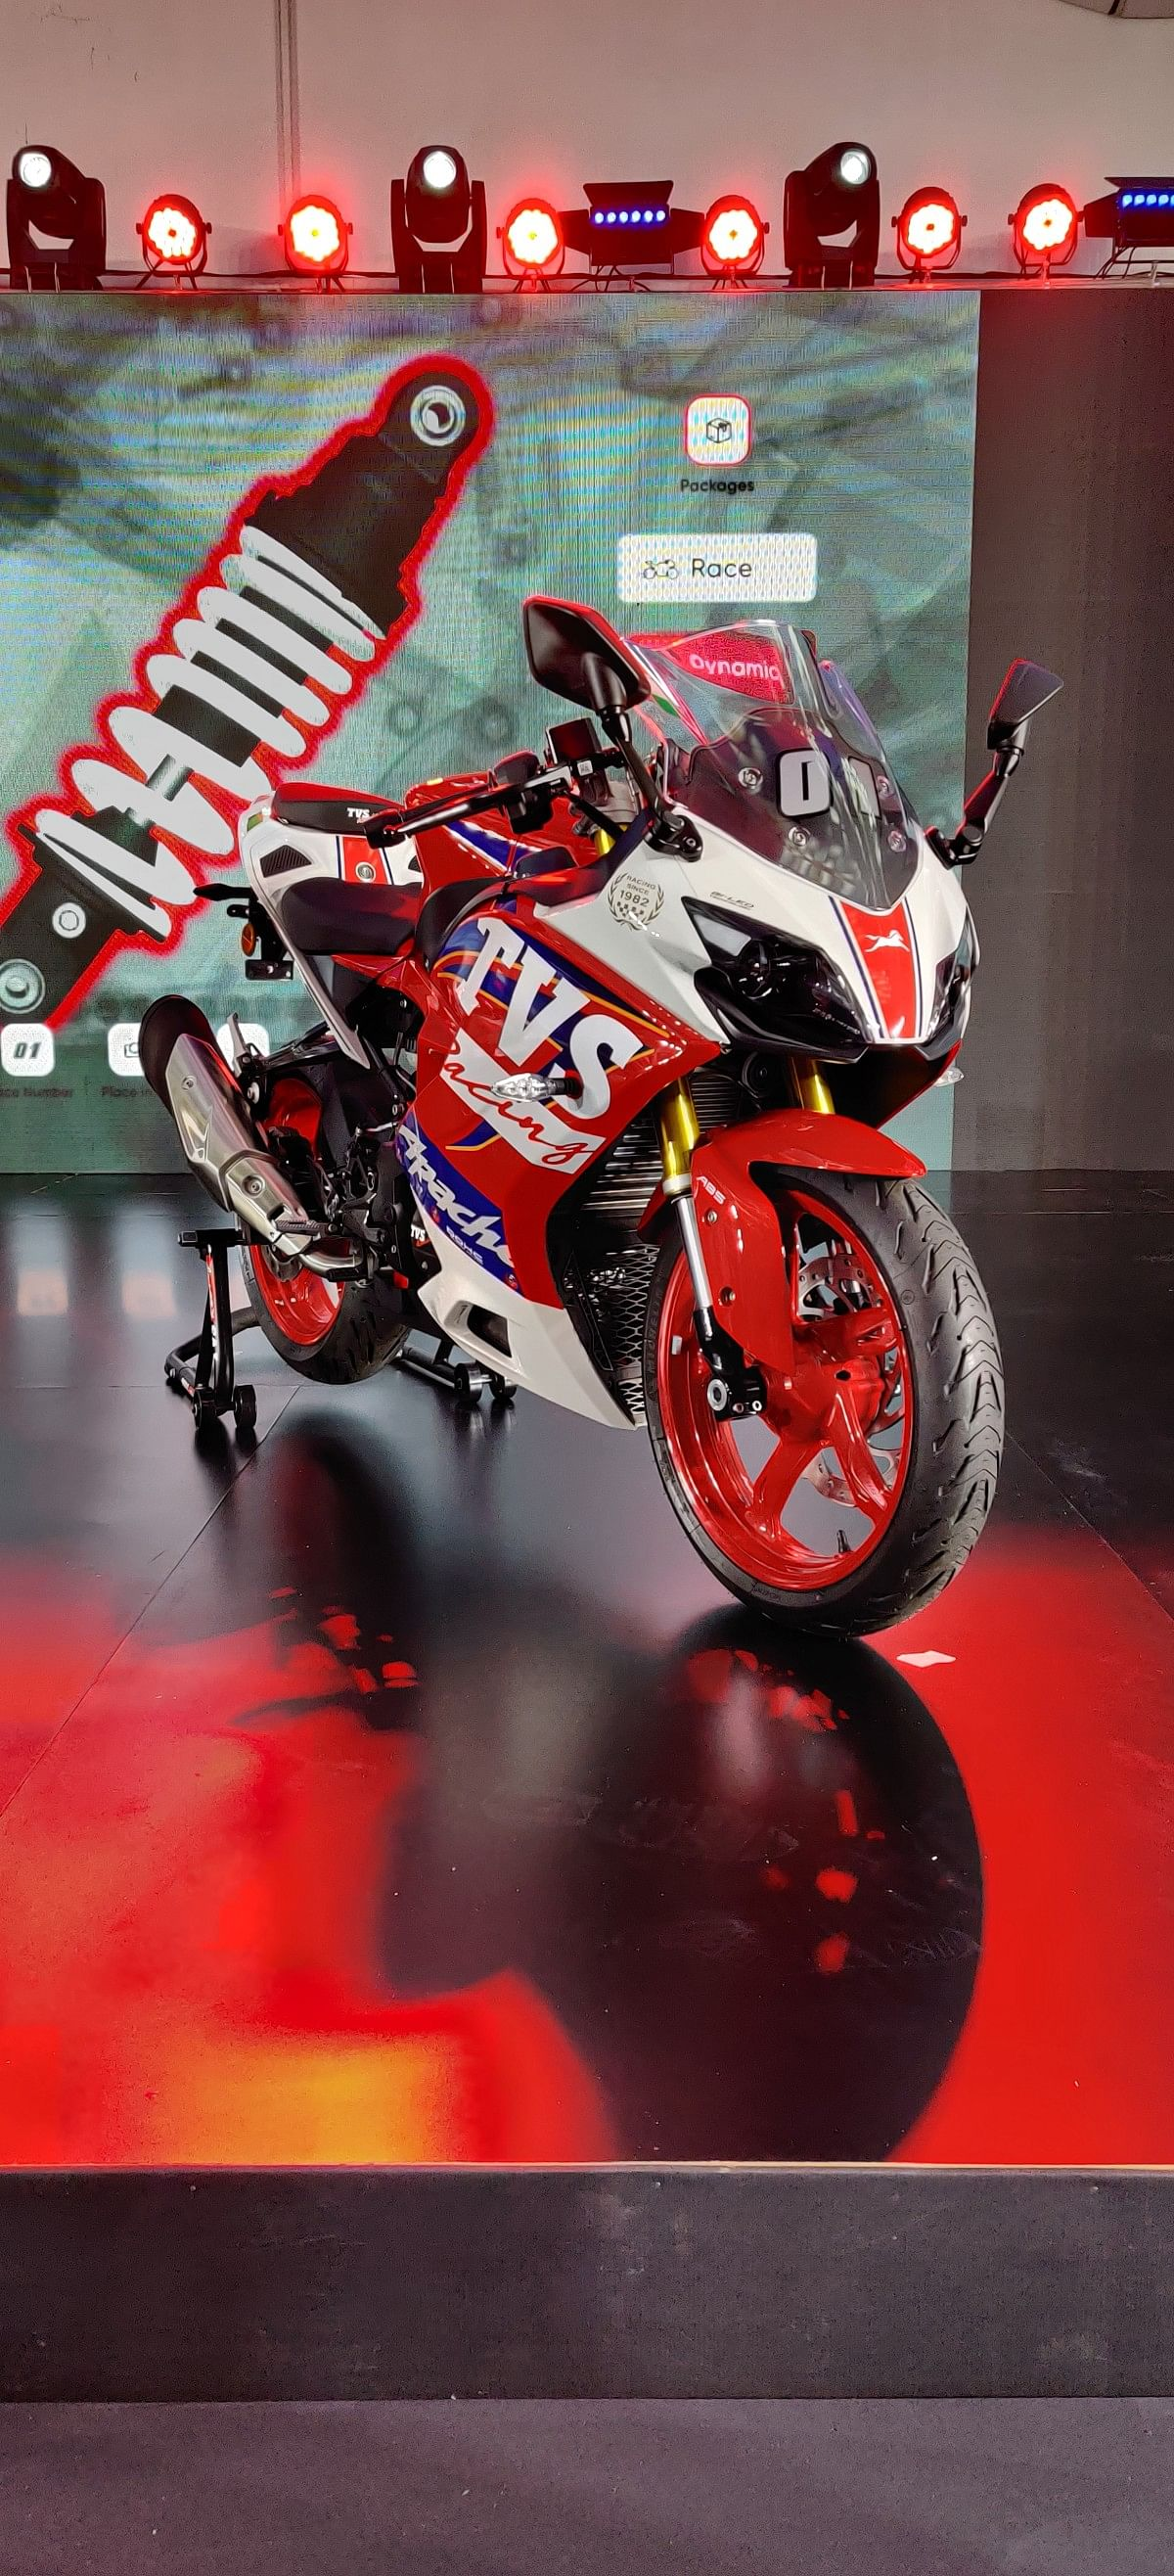 The new Apache RR310 gets race replica livery as a special graphic